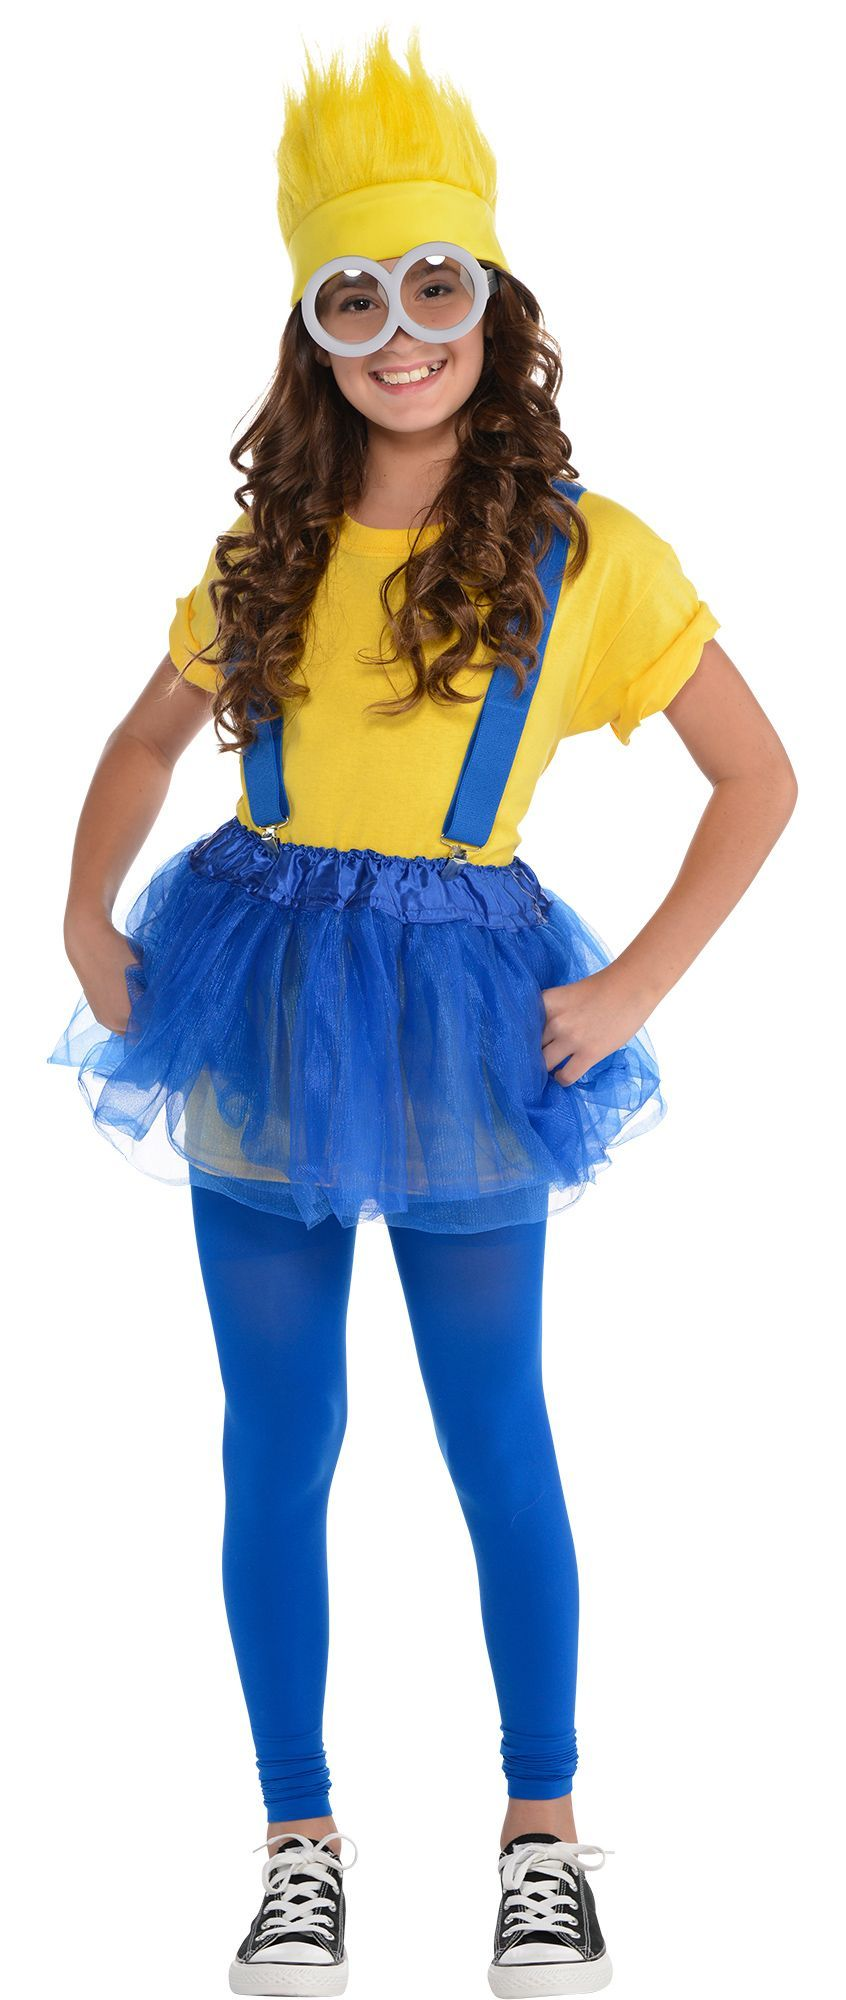 Party City. Costume pieces sold separately for Minions